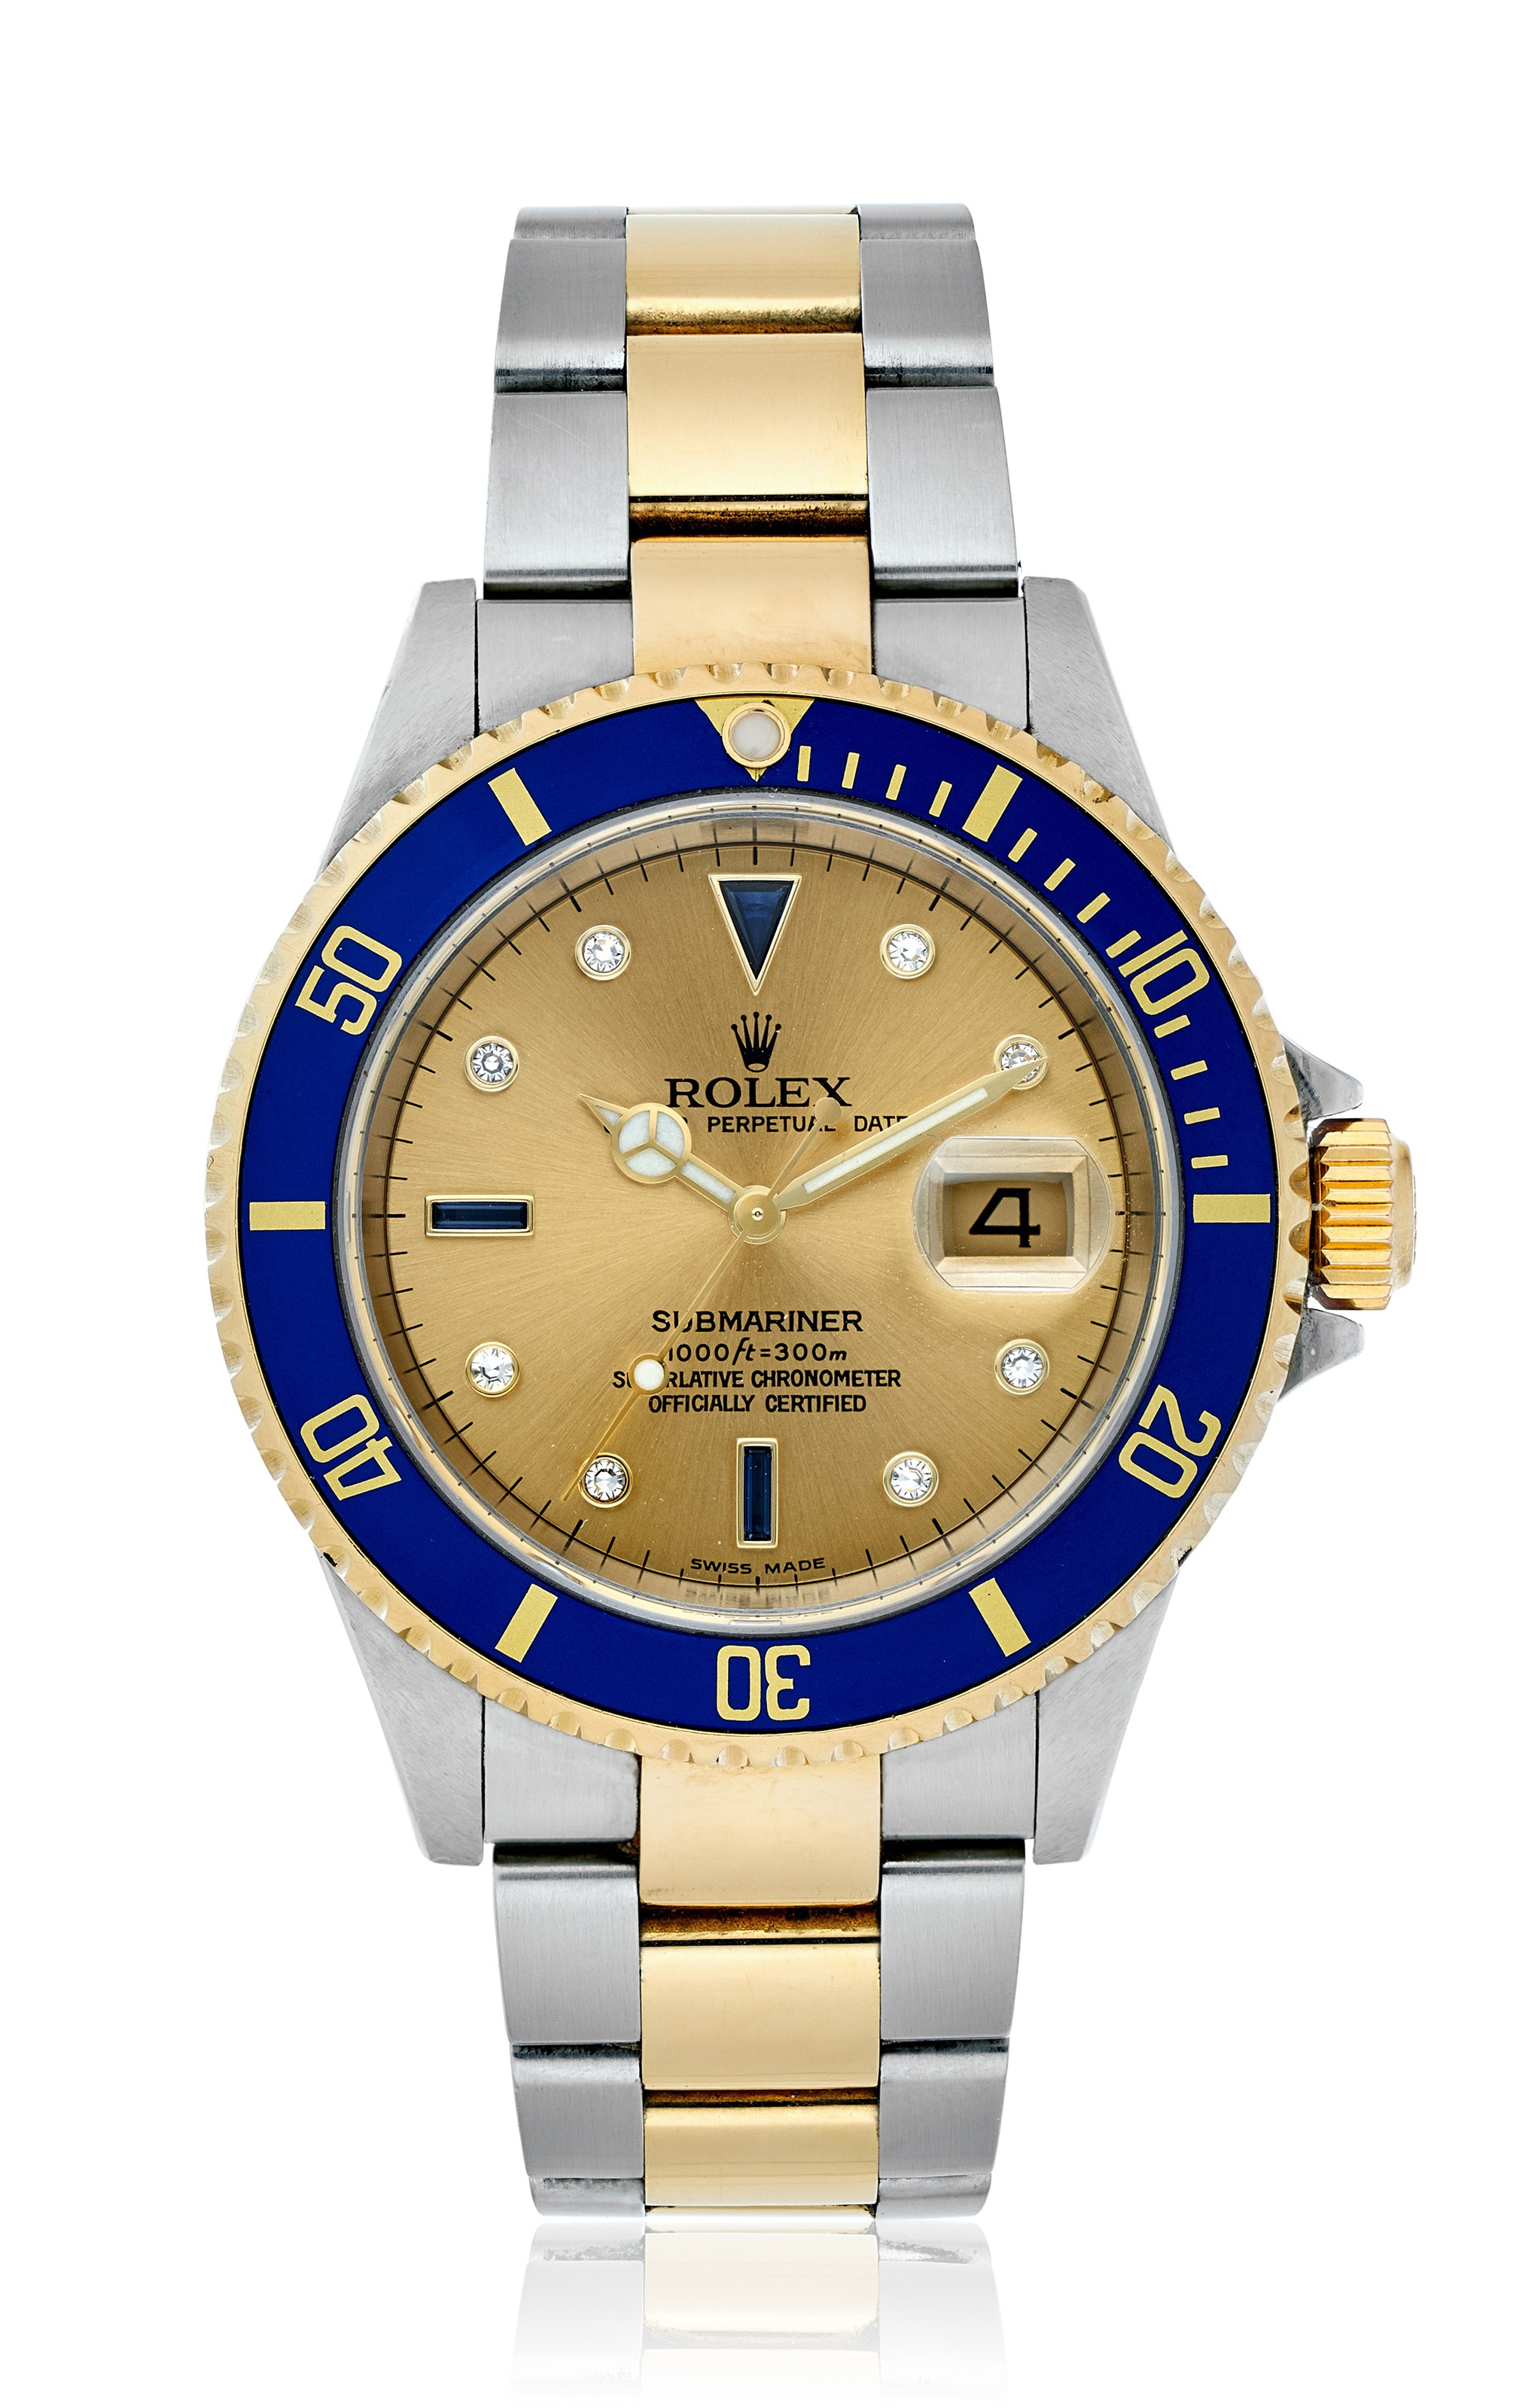 "ROLEX, TWO-TONE SUBMARINER ""SERTI DIAL"", REF. 16613 T"